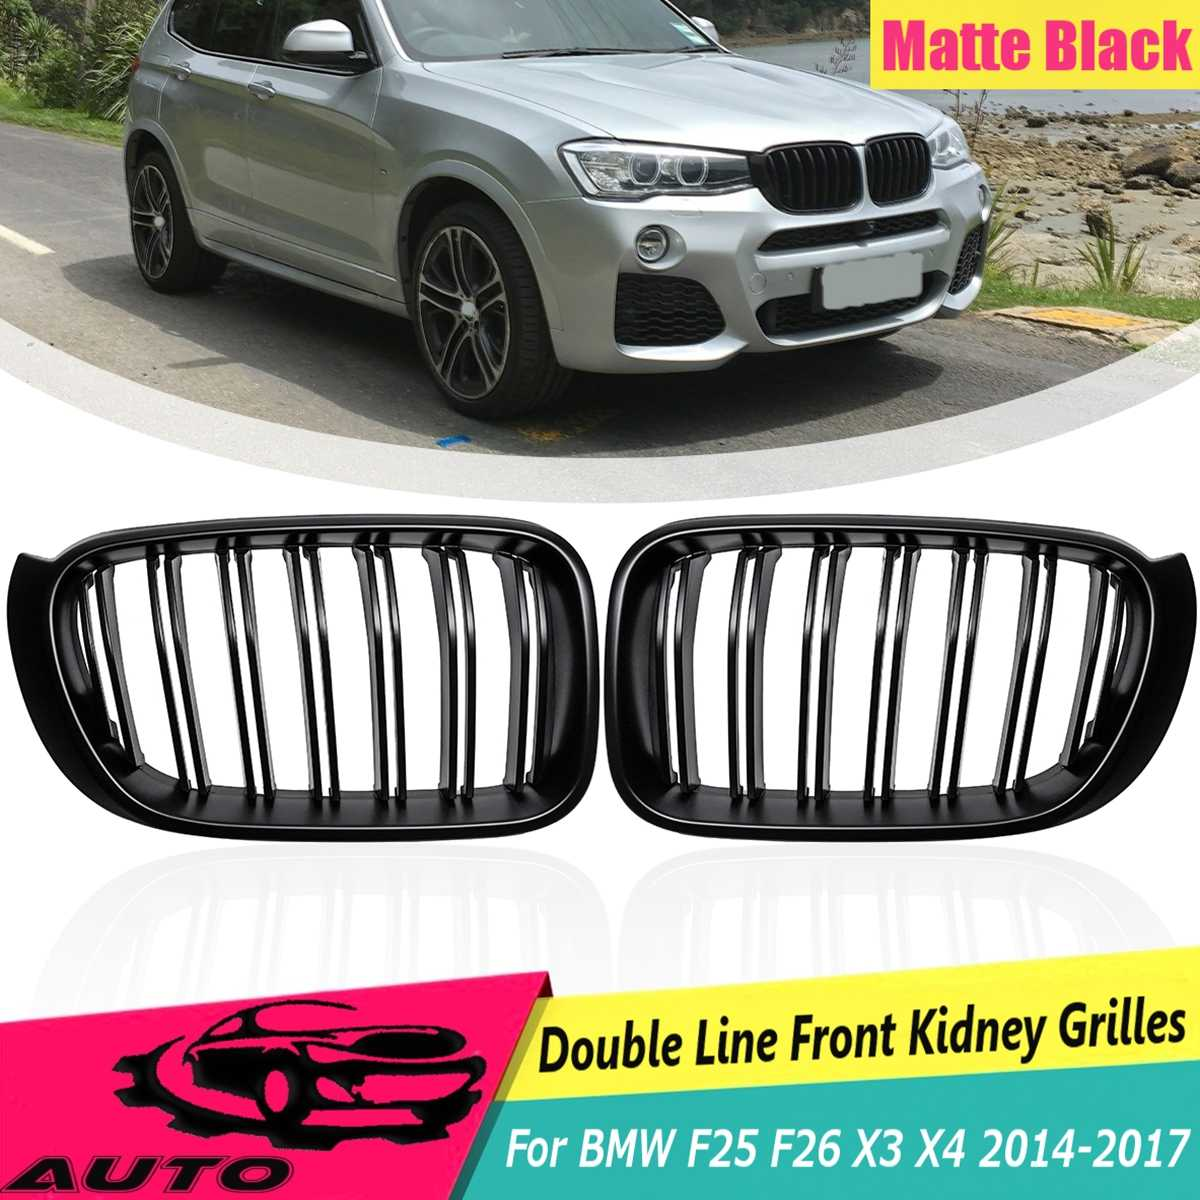 1 Pair ABS Matt Black 2 Line Slat Front Kidney Grill Racing Grill Replacement For BMW F25 F26 X3 X4 2014 2015 2016 2017